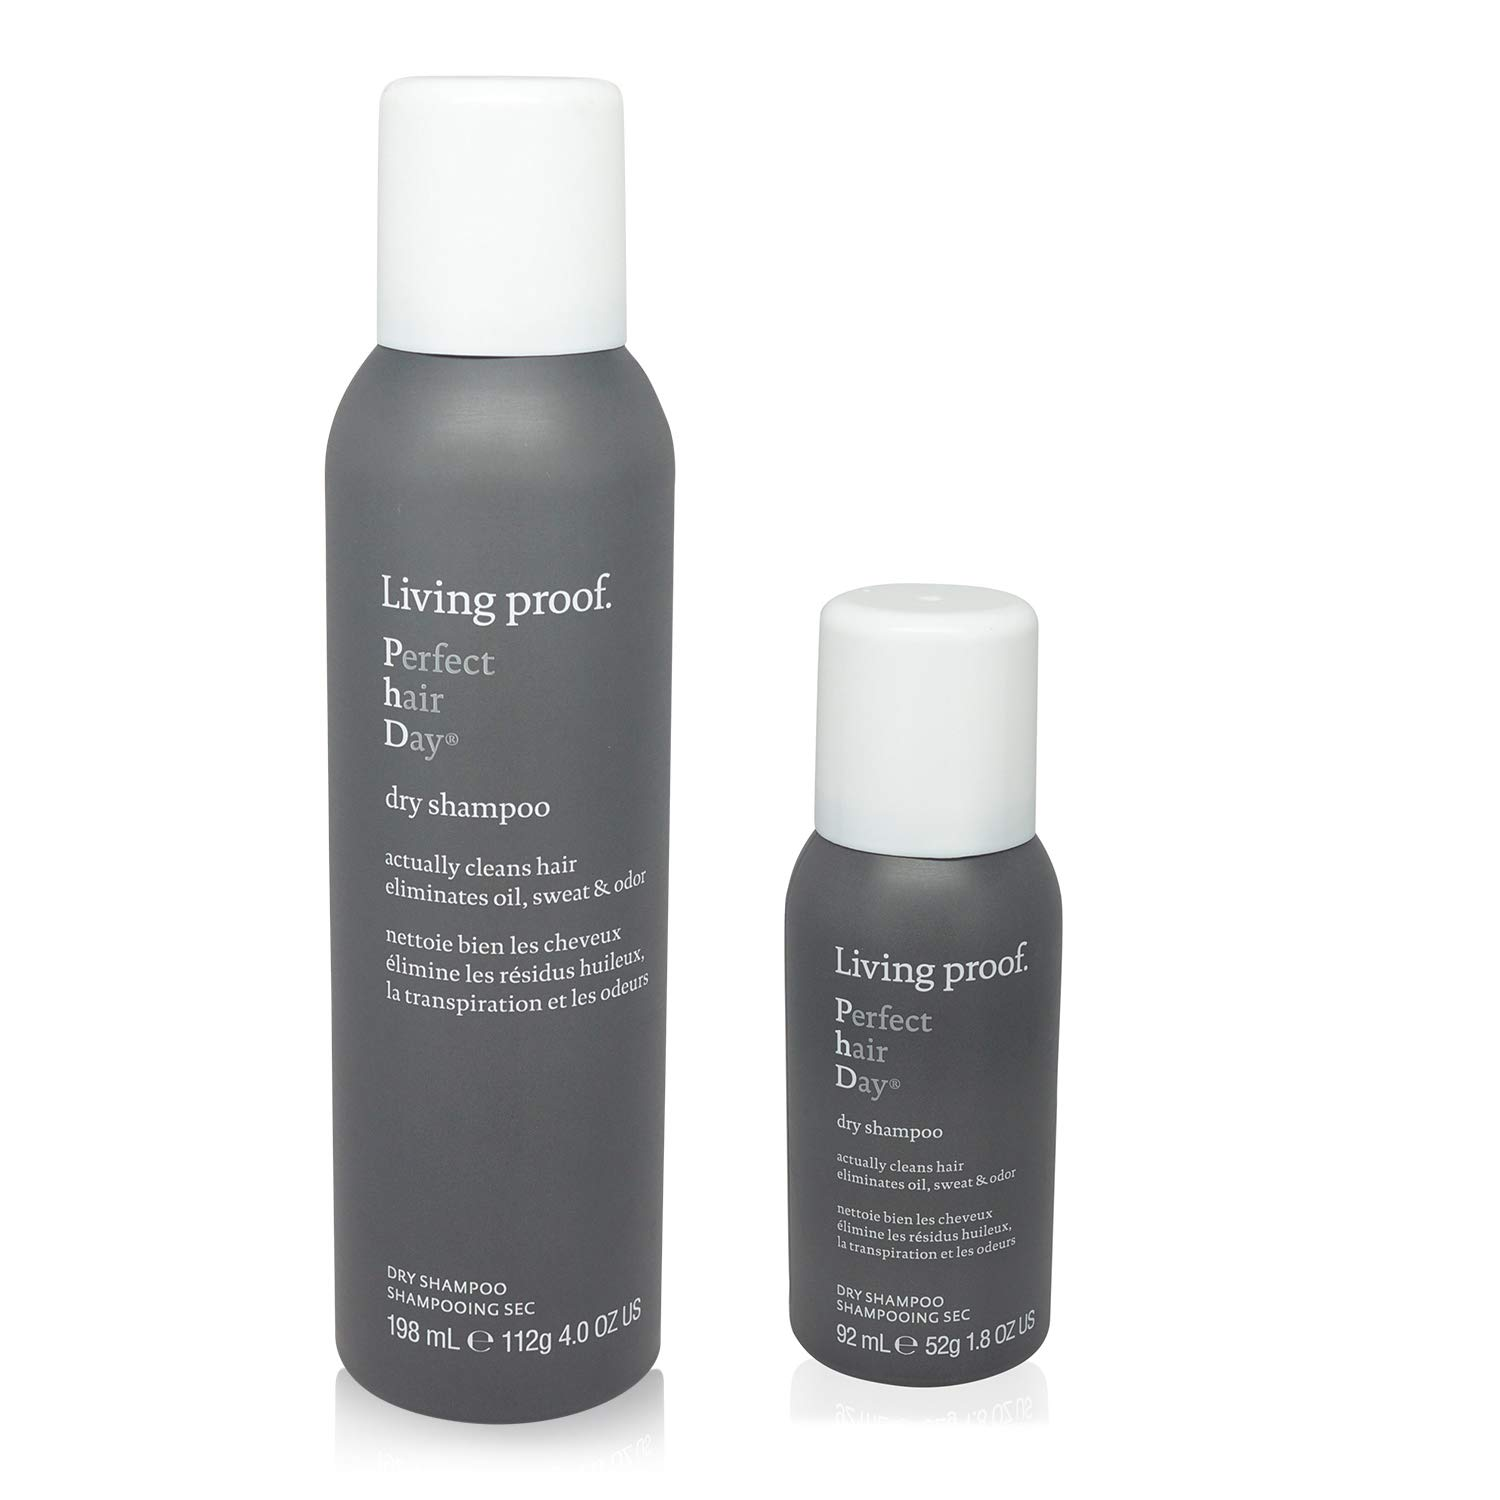 Living Proof Perfect Hair Day Dry Shampoo Bundle by Living Proof